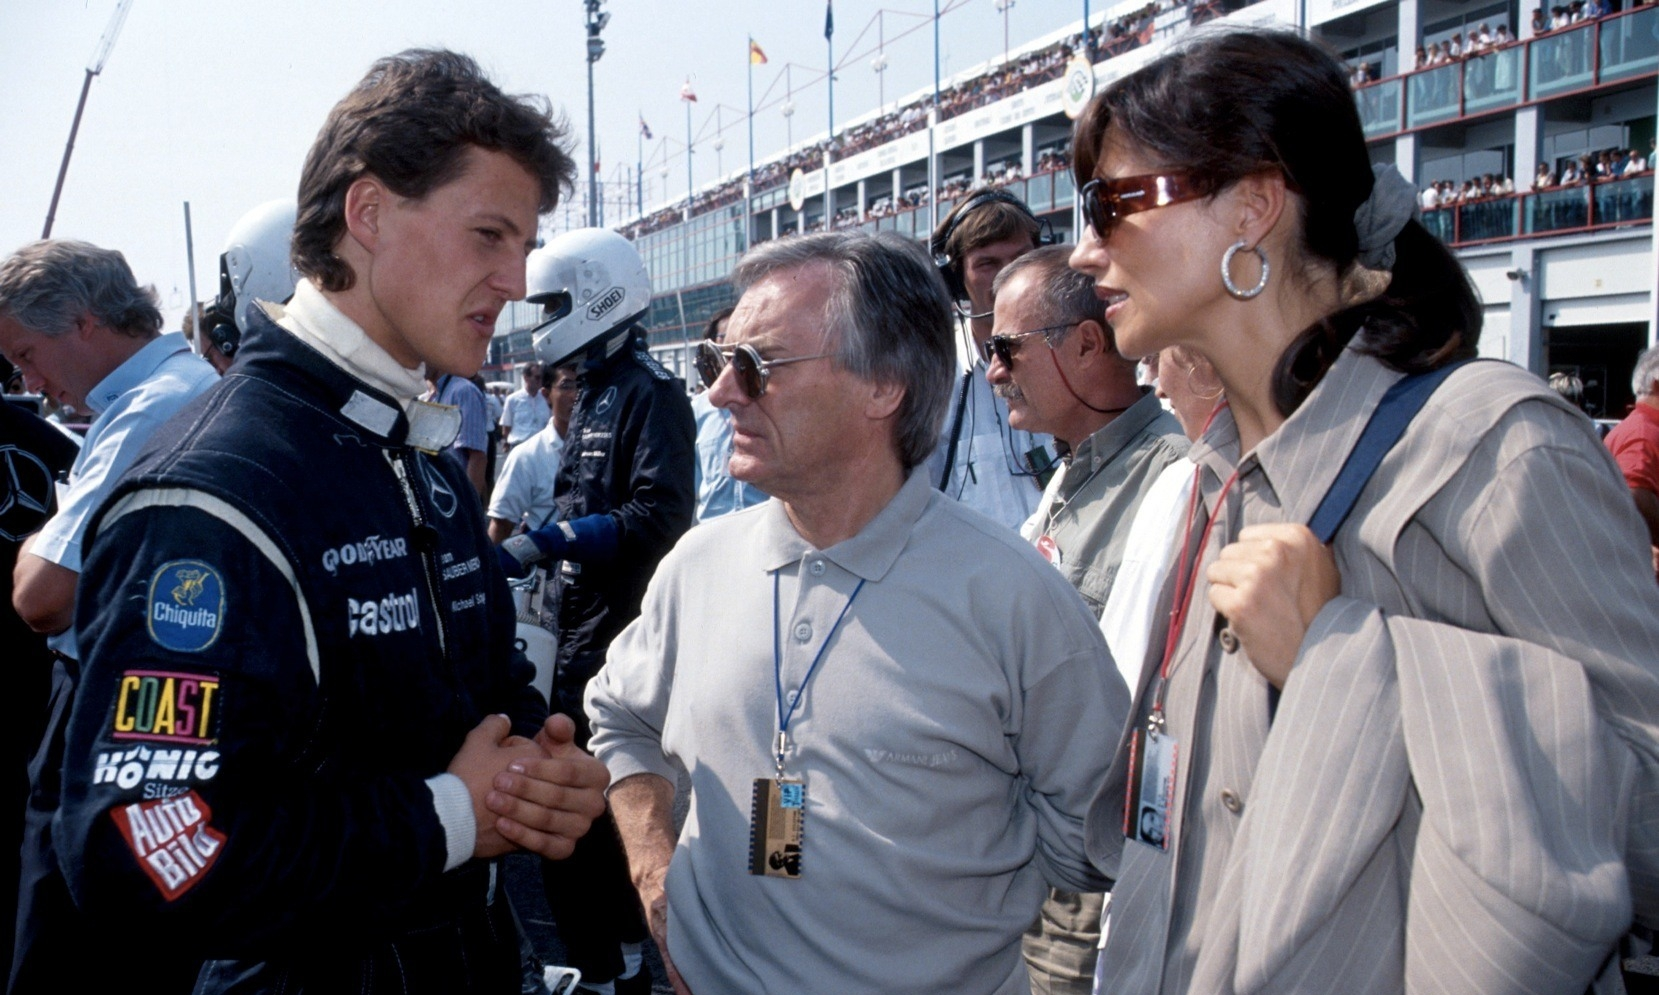 Bernie_Ecclestone_Michael_Schumacher_September_1991.jpeg